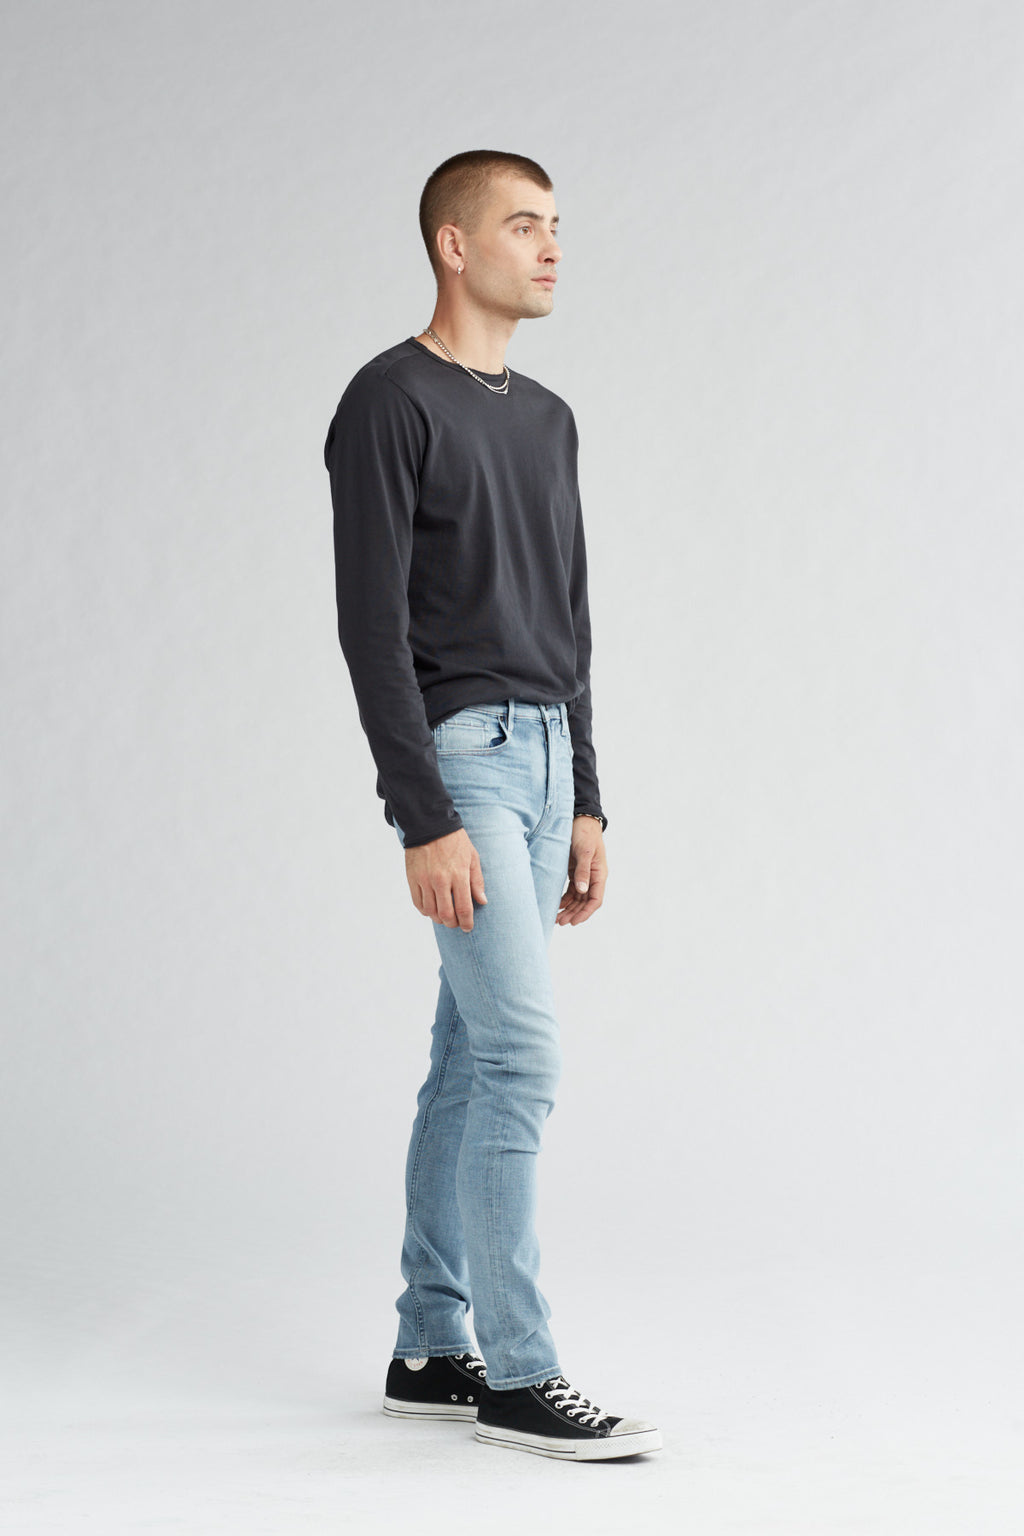 AXL SKINNY JEAN - ROSEWELL - Image 2